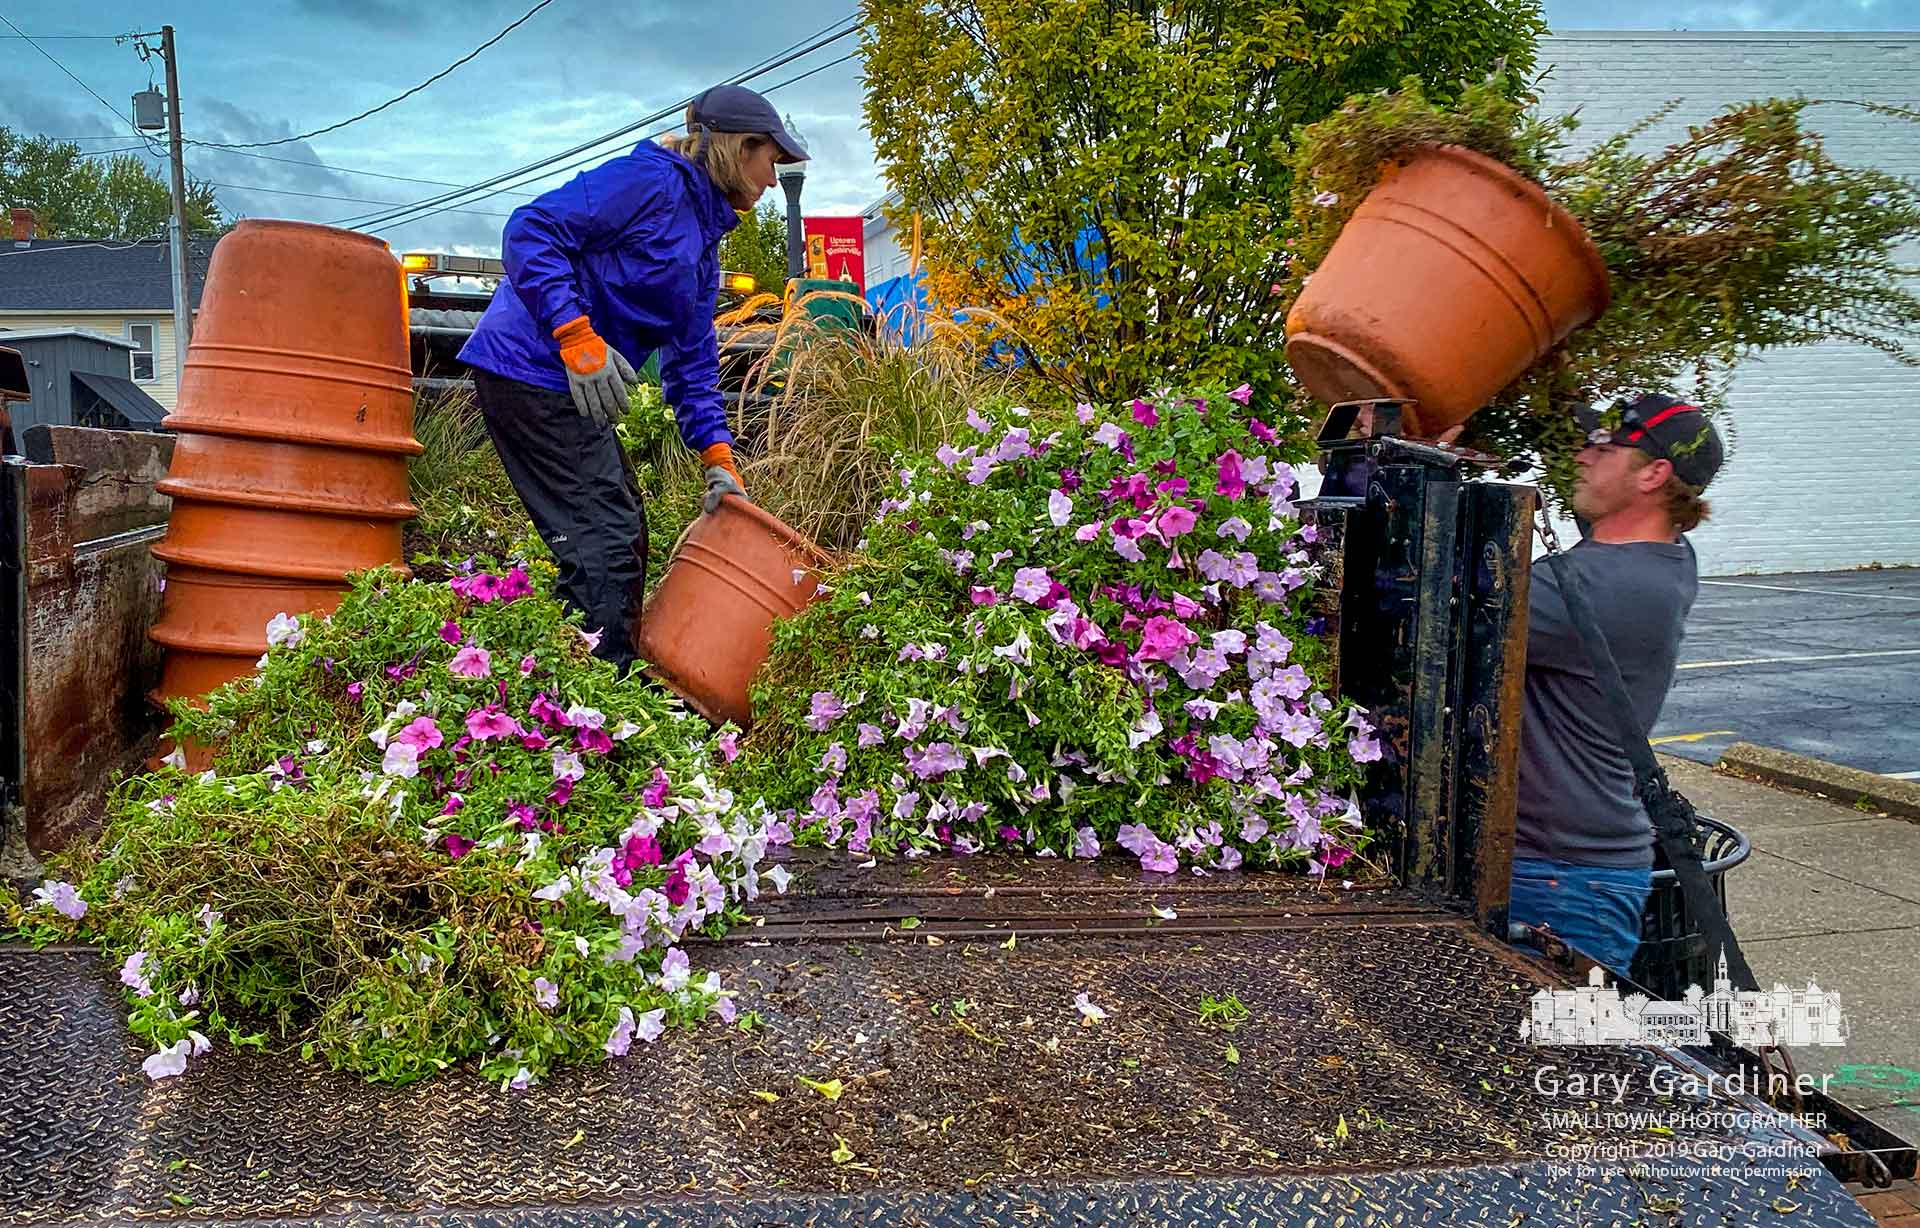 Westerville Parks and Recreation workers remove hanging baskets and planters from poles and the sidewalk in Uptown Westerville the morning after the Democratic presidential debate. My Final Photo for Oct. 15, 2019.